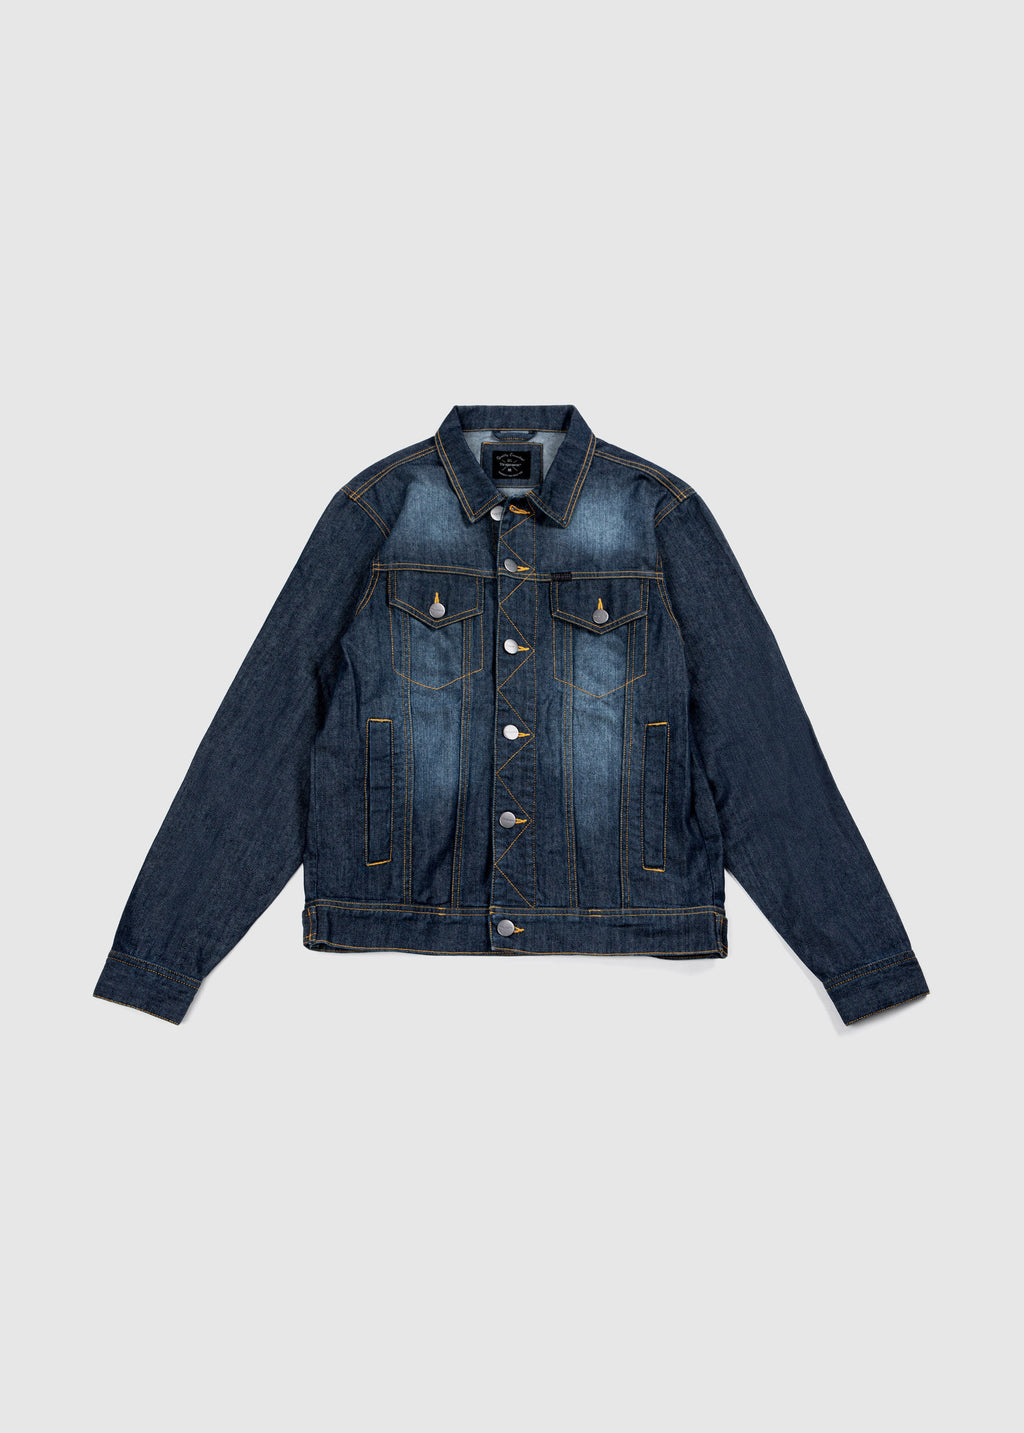 JACKET DENIM DARKBLUE SS20